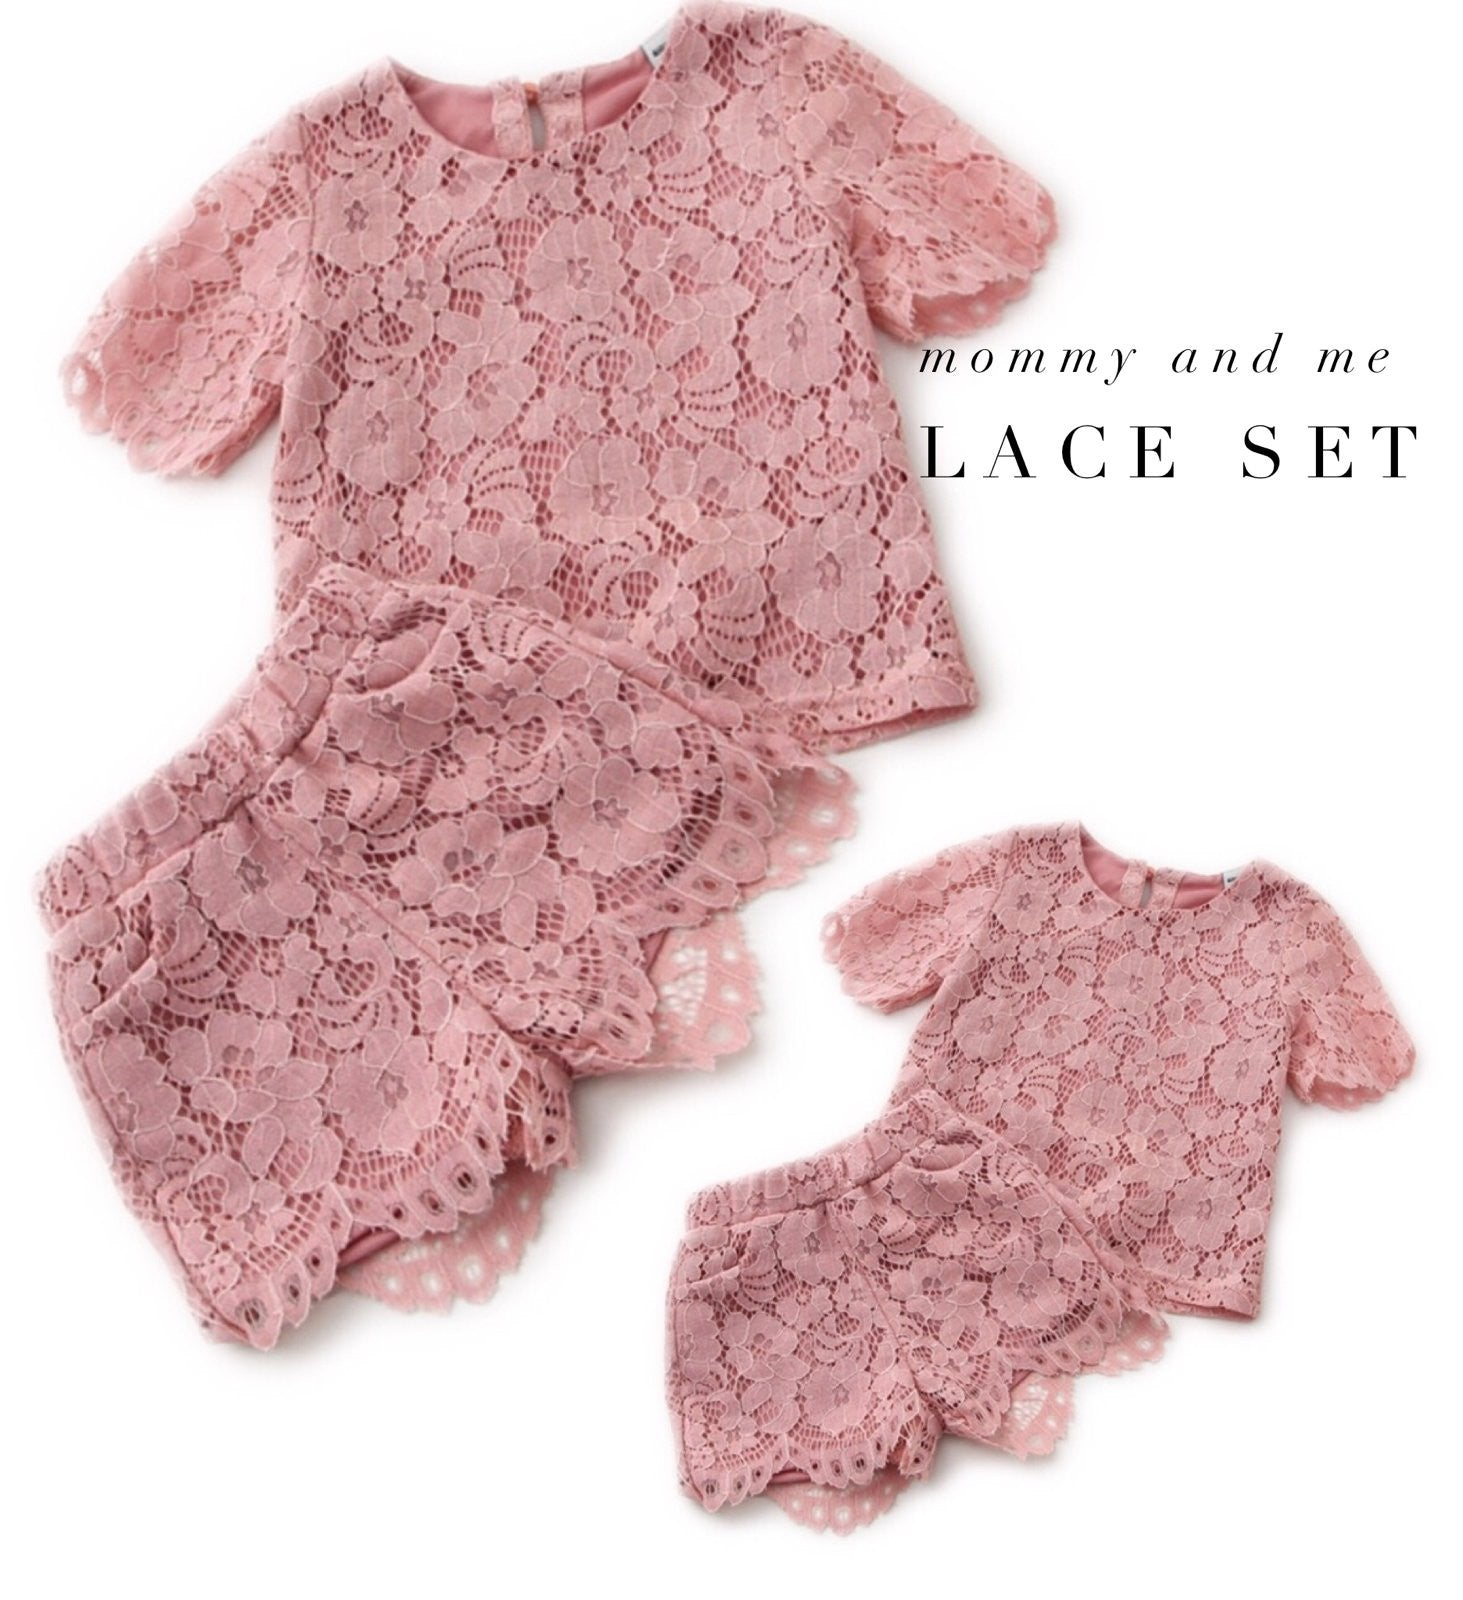 Blush pink lace set